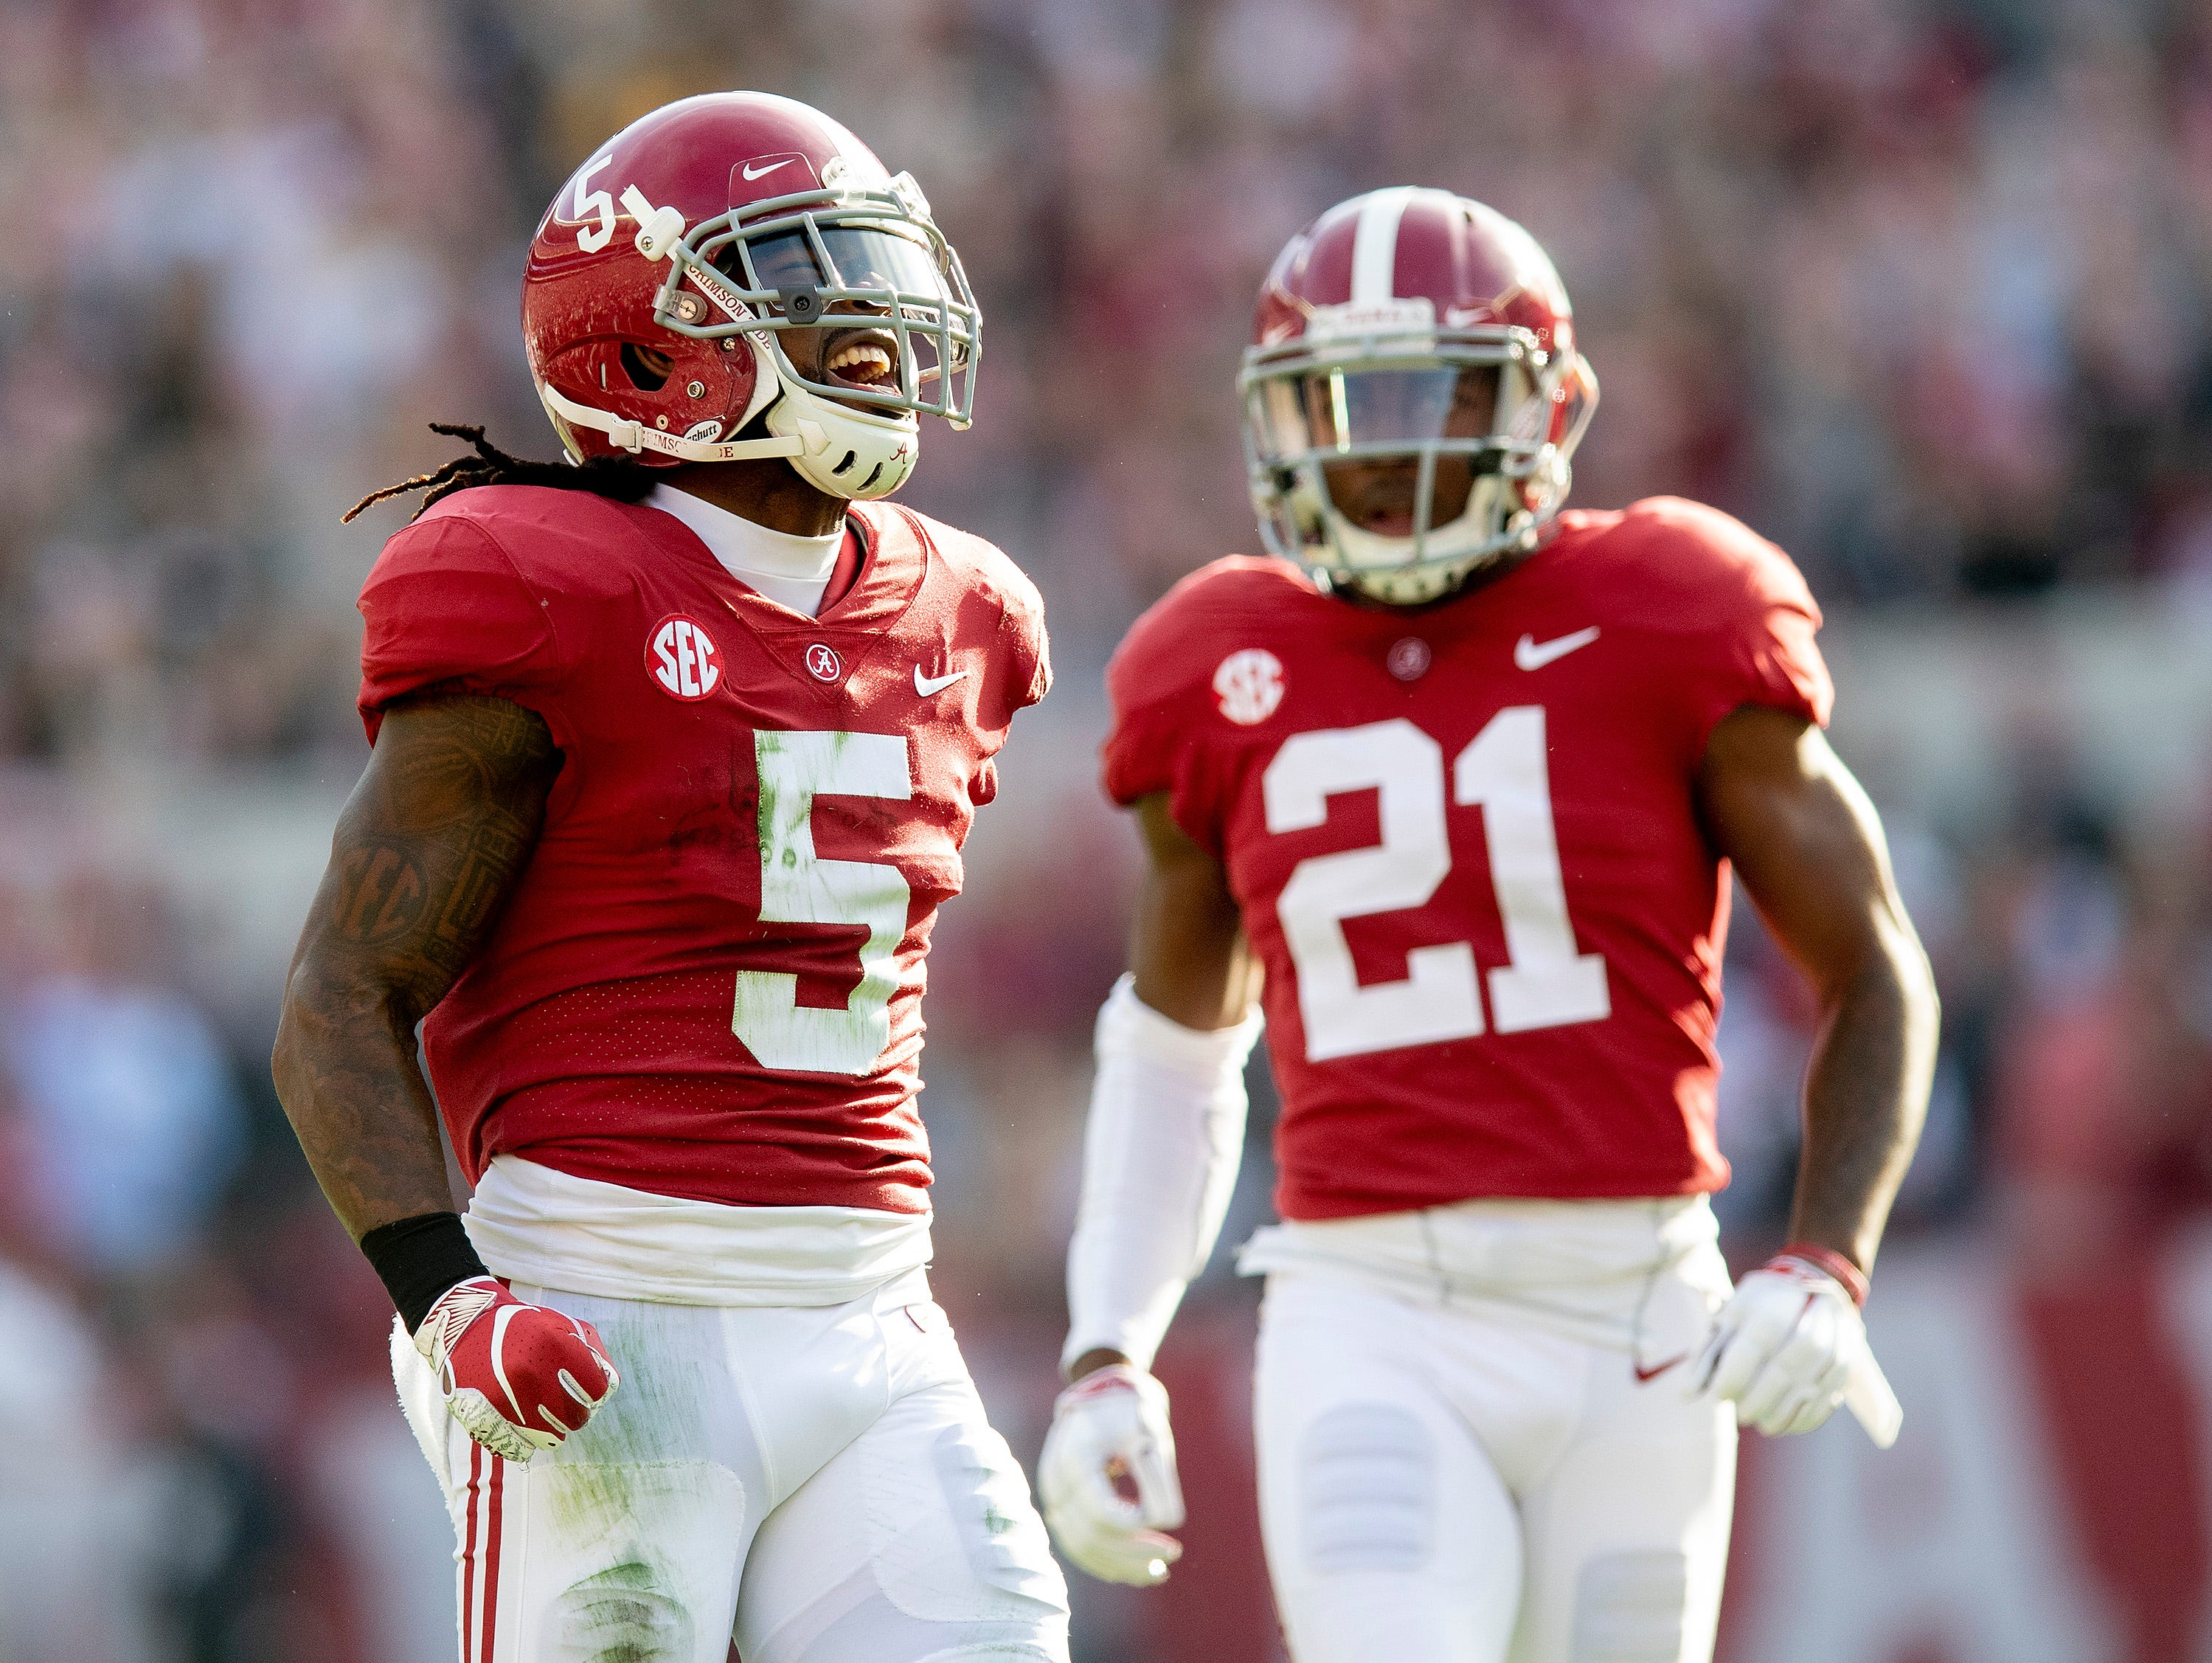 Alabama defensive back Shyheim Carter (5) celebrates a stop against Auburn in first half action during the Iron Bowl at Bryant-Denny Stadium in Tuscaloosa, Ala., on Saturday November 24, 2018.